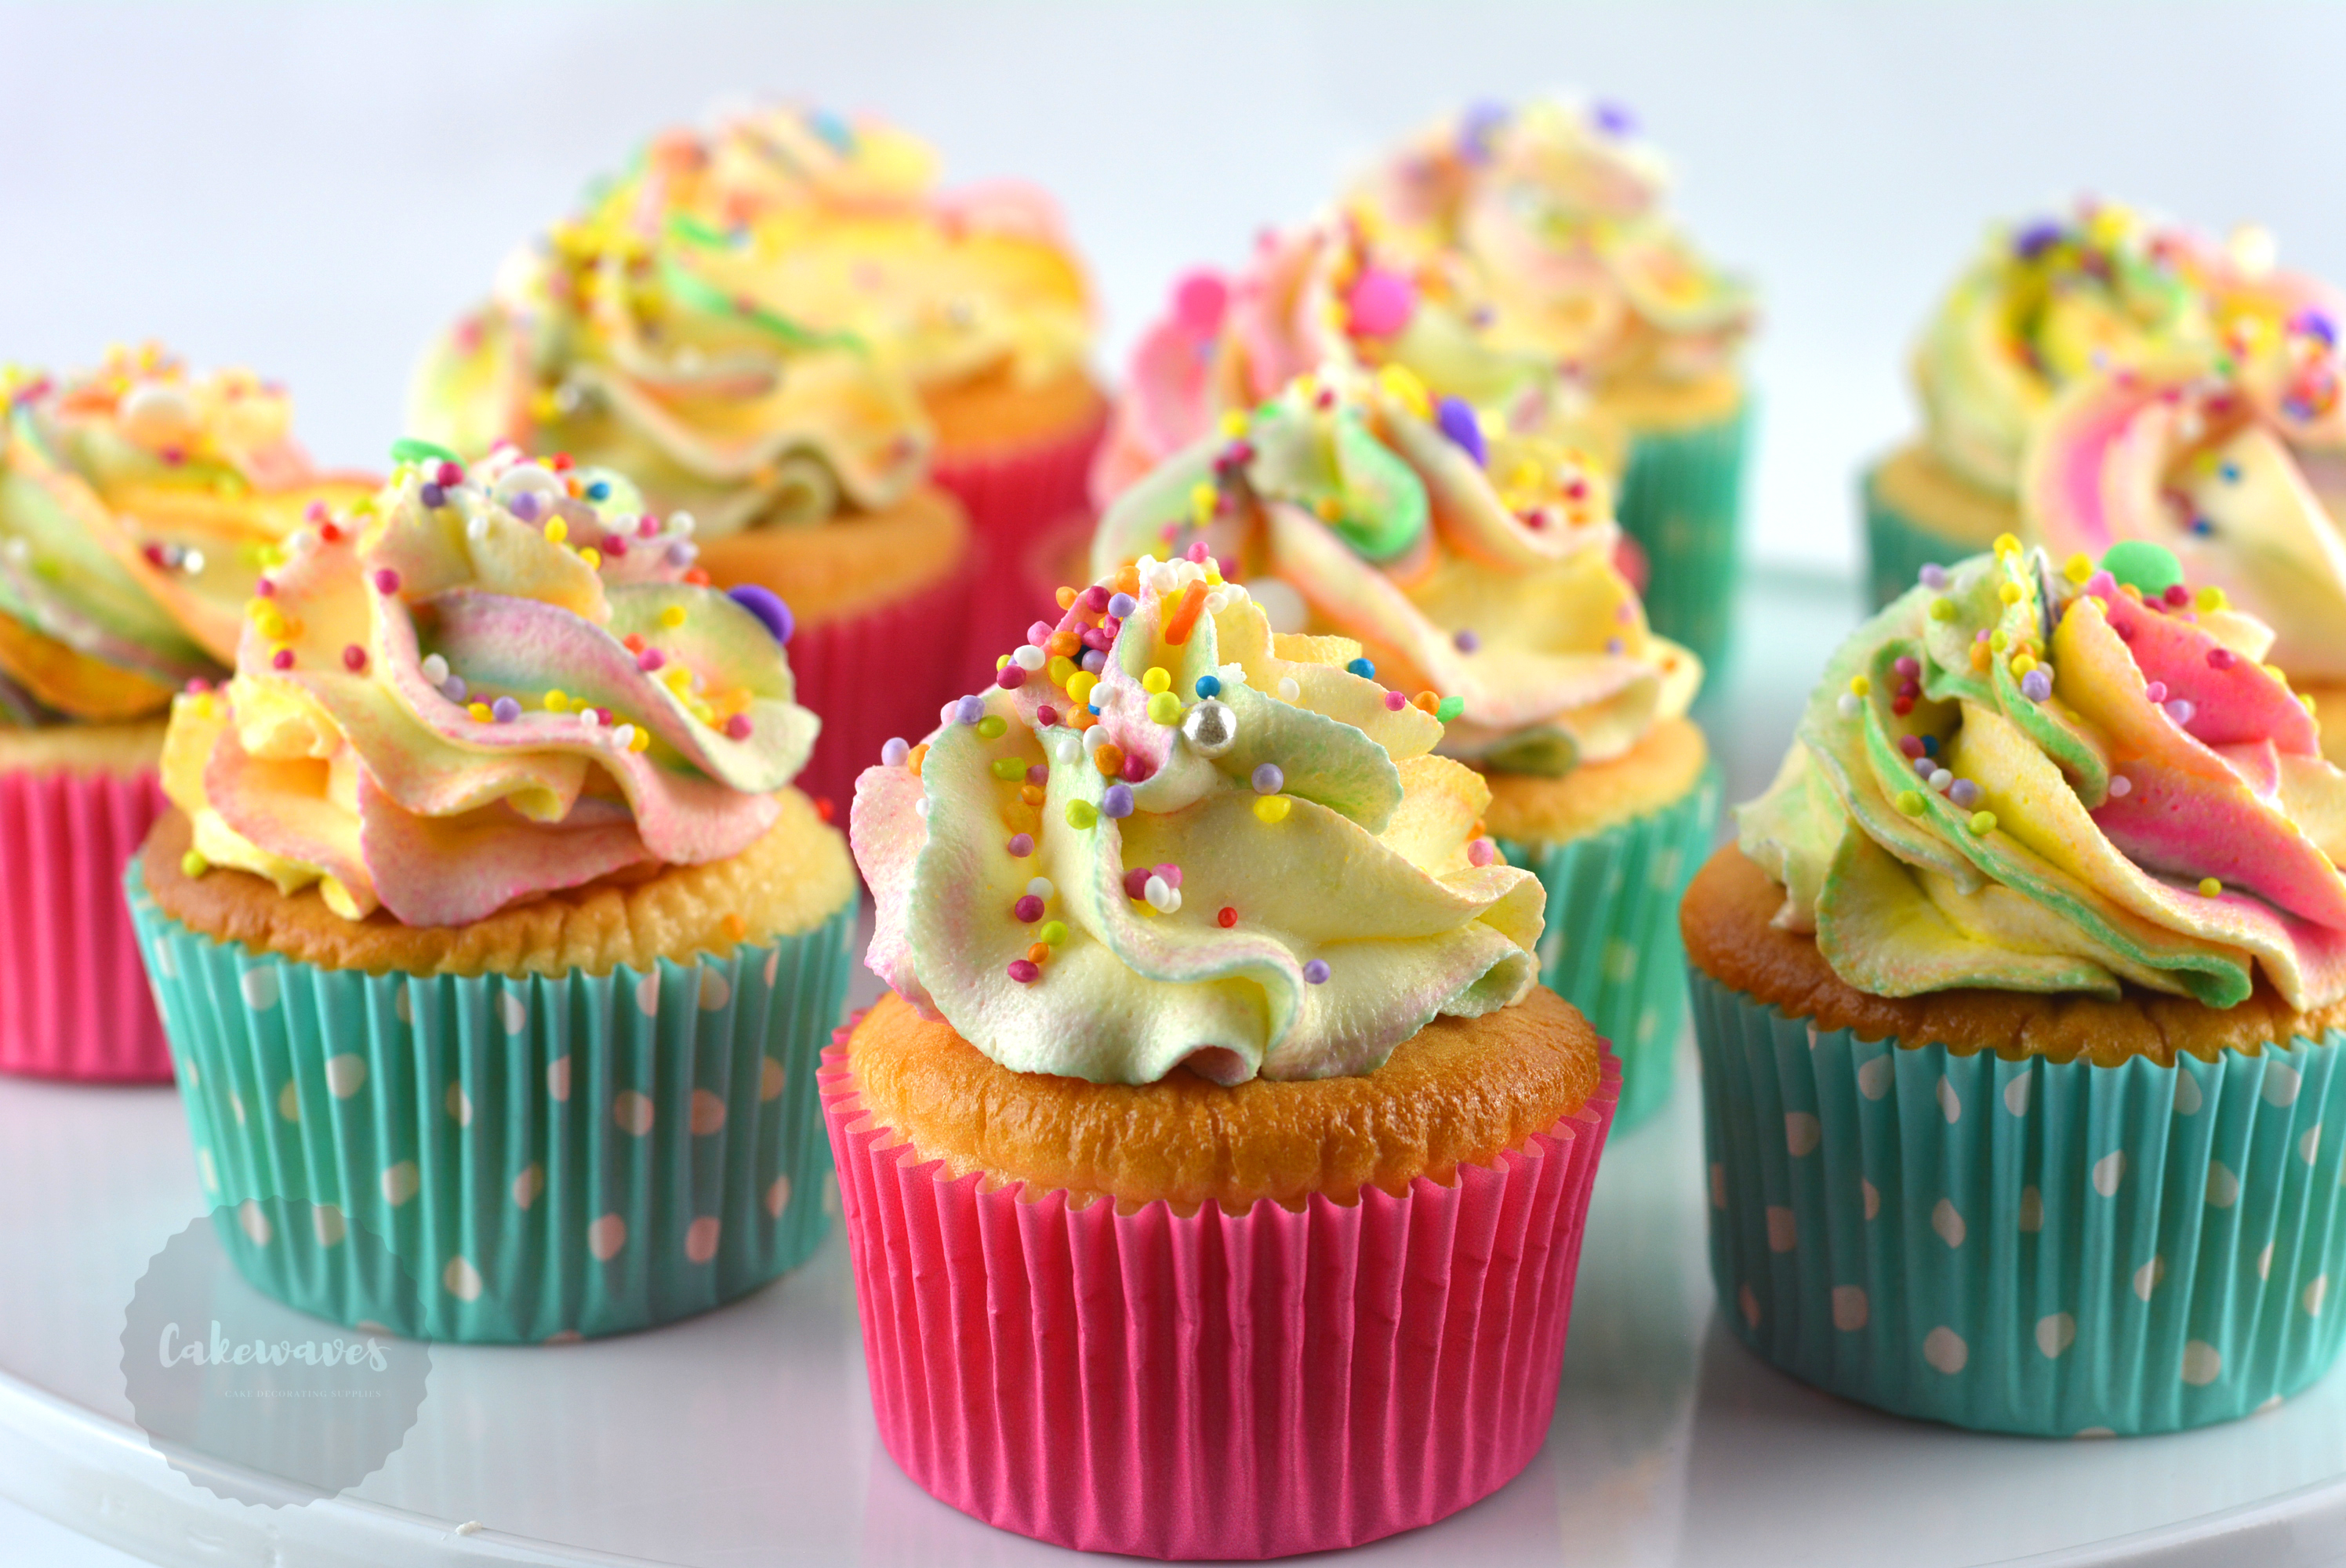 Rainbow Cupcake with Sprinkles